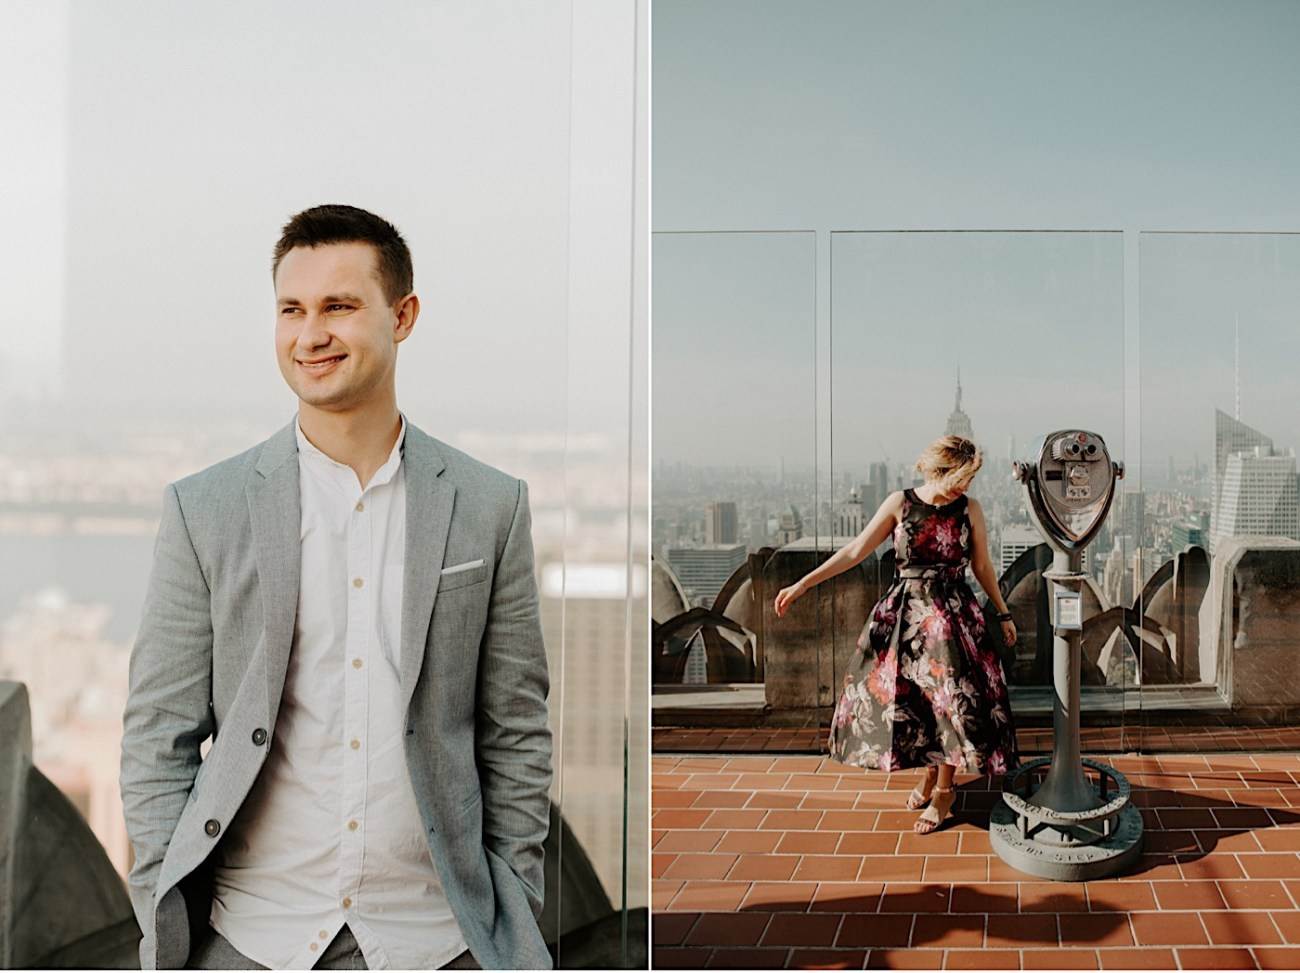 Top Of The Rock Engagement Session NYC Engagement Locations New York Wedding Photographer 21